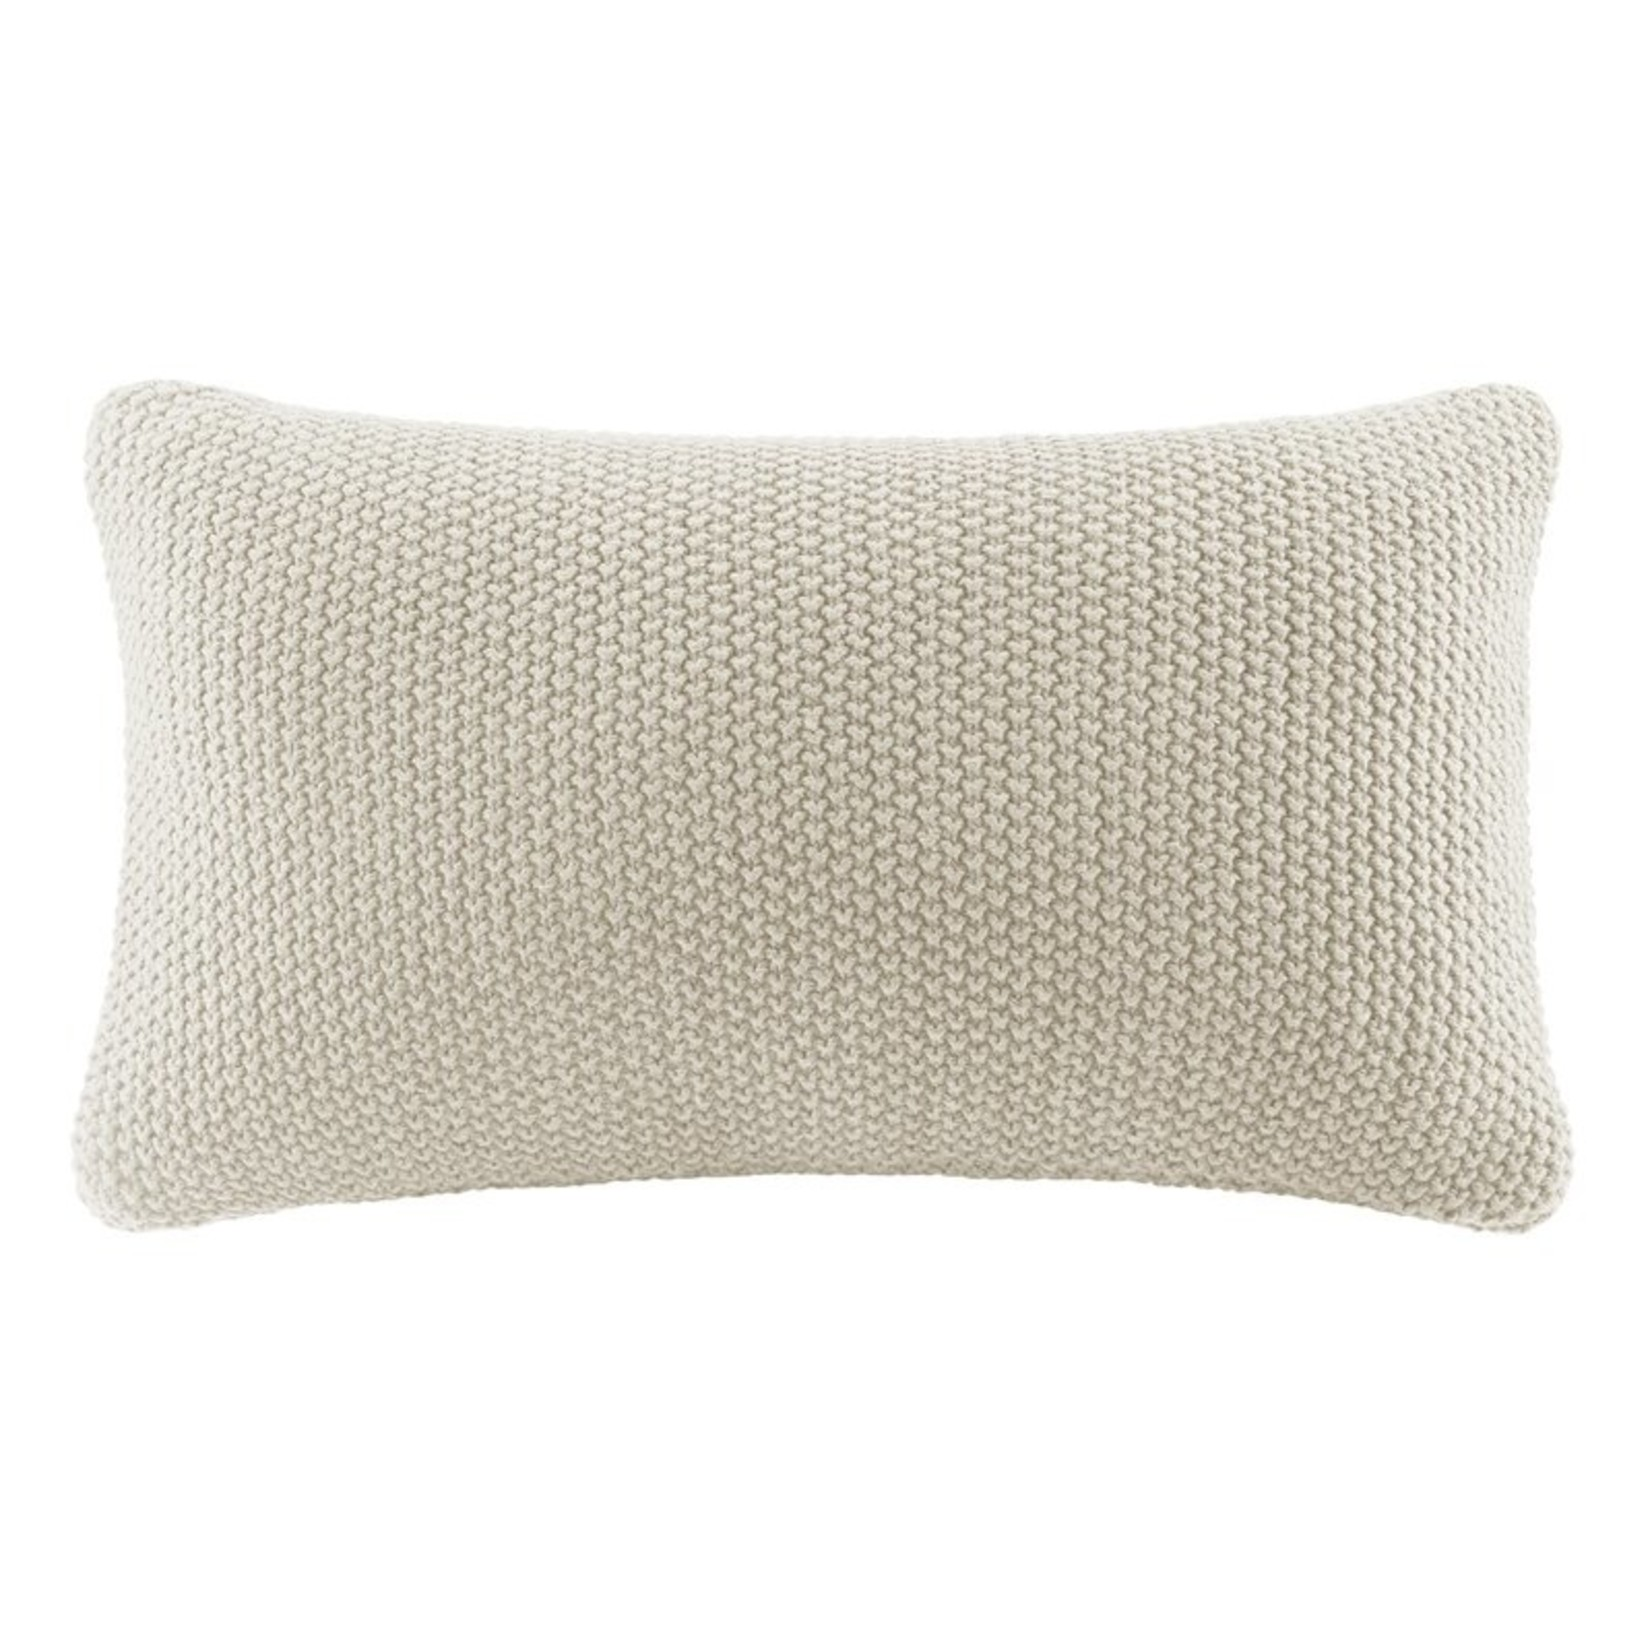 *Elliott Knit Lumbar Pillow Cover - Ivory (COVER ONLY)